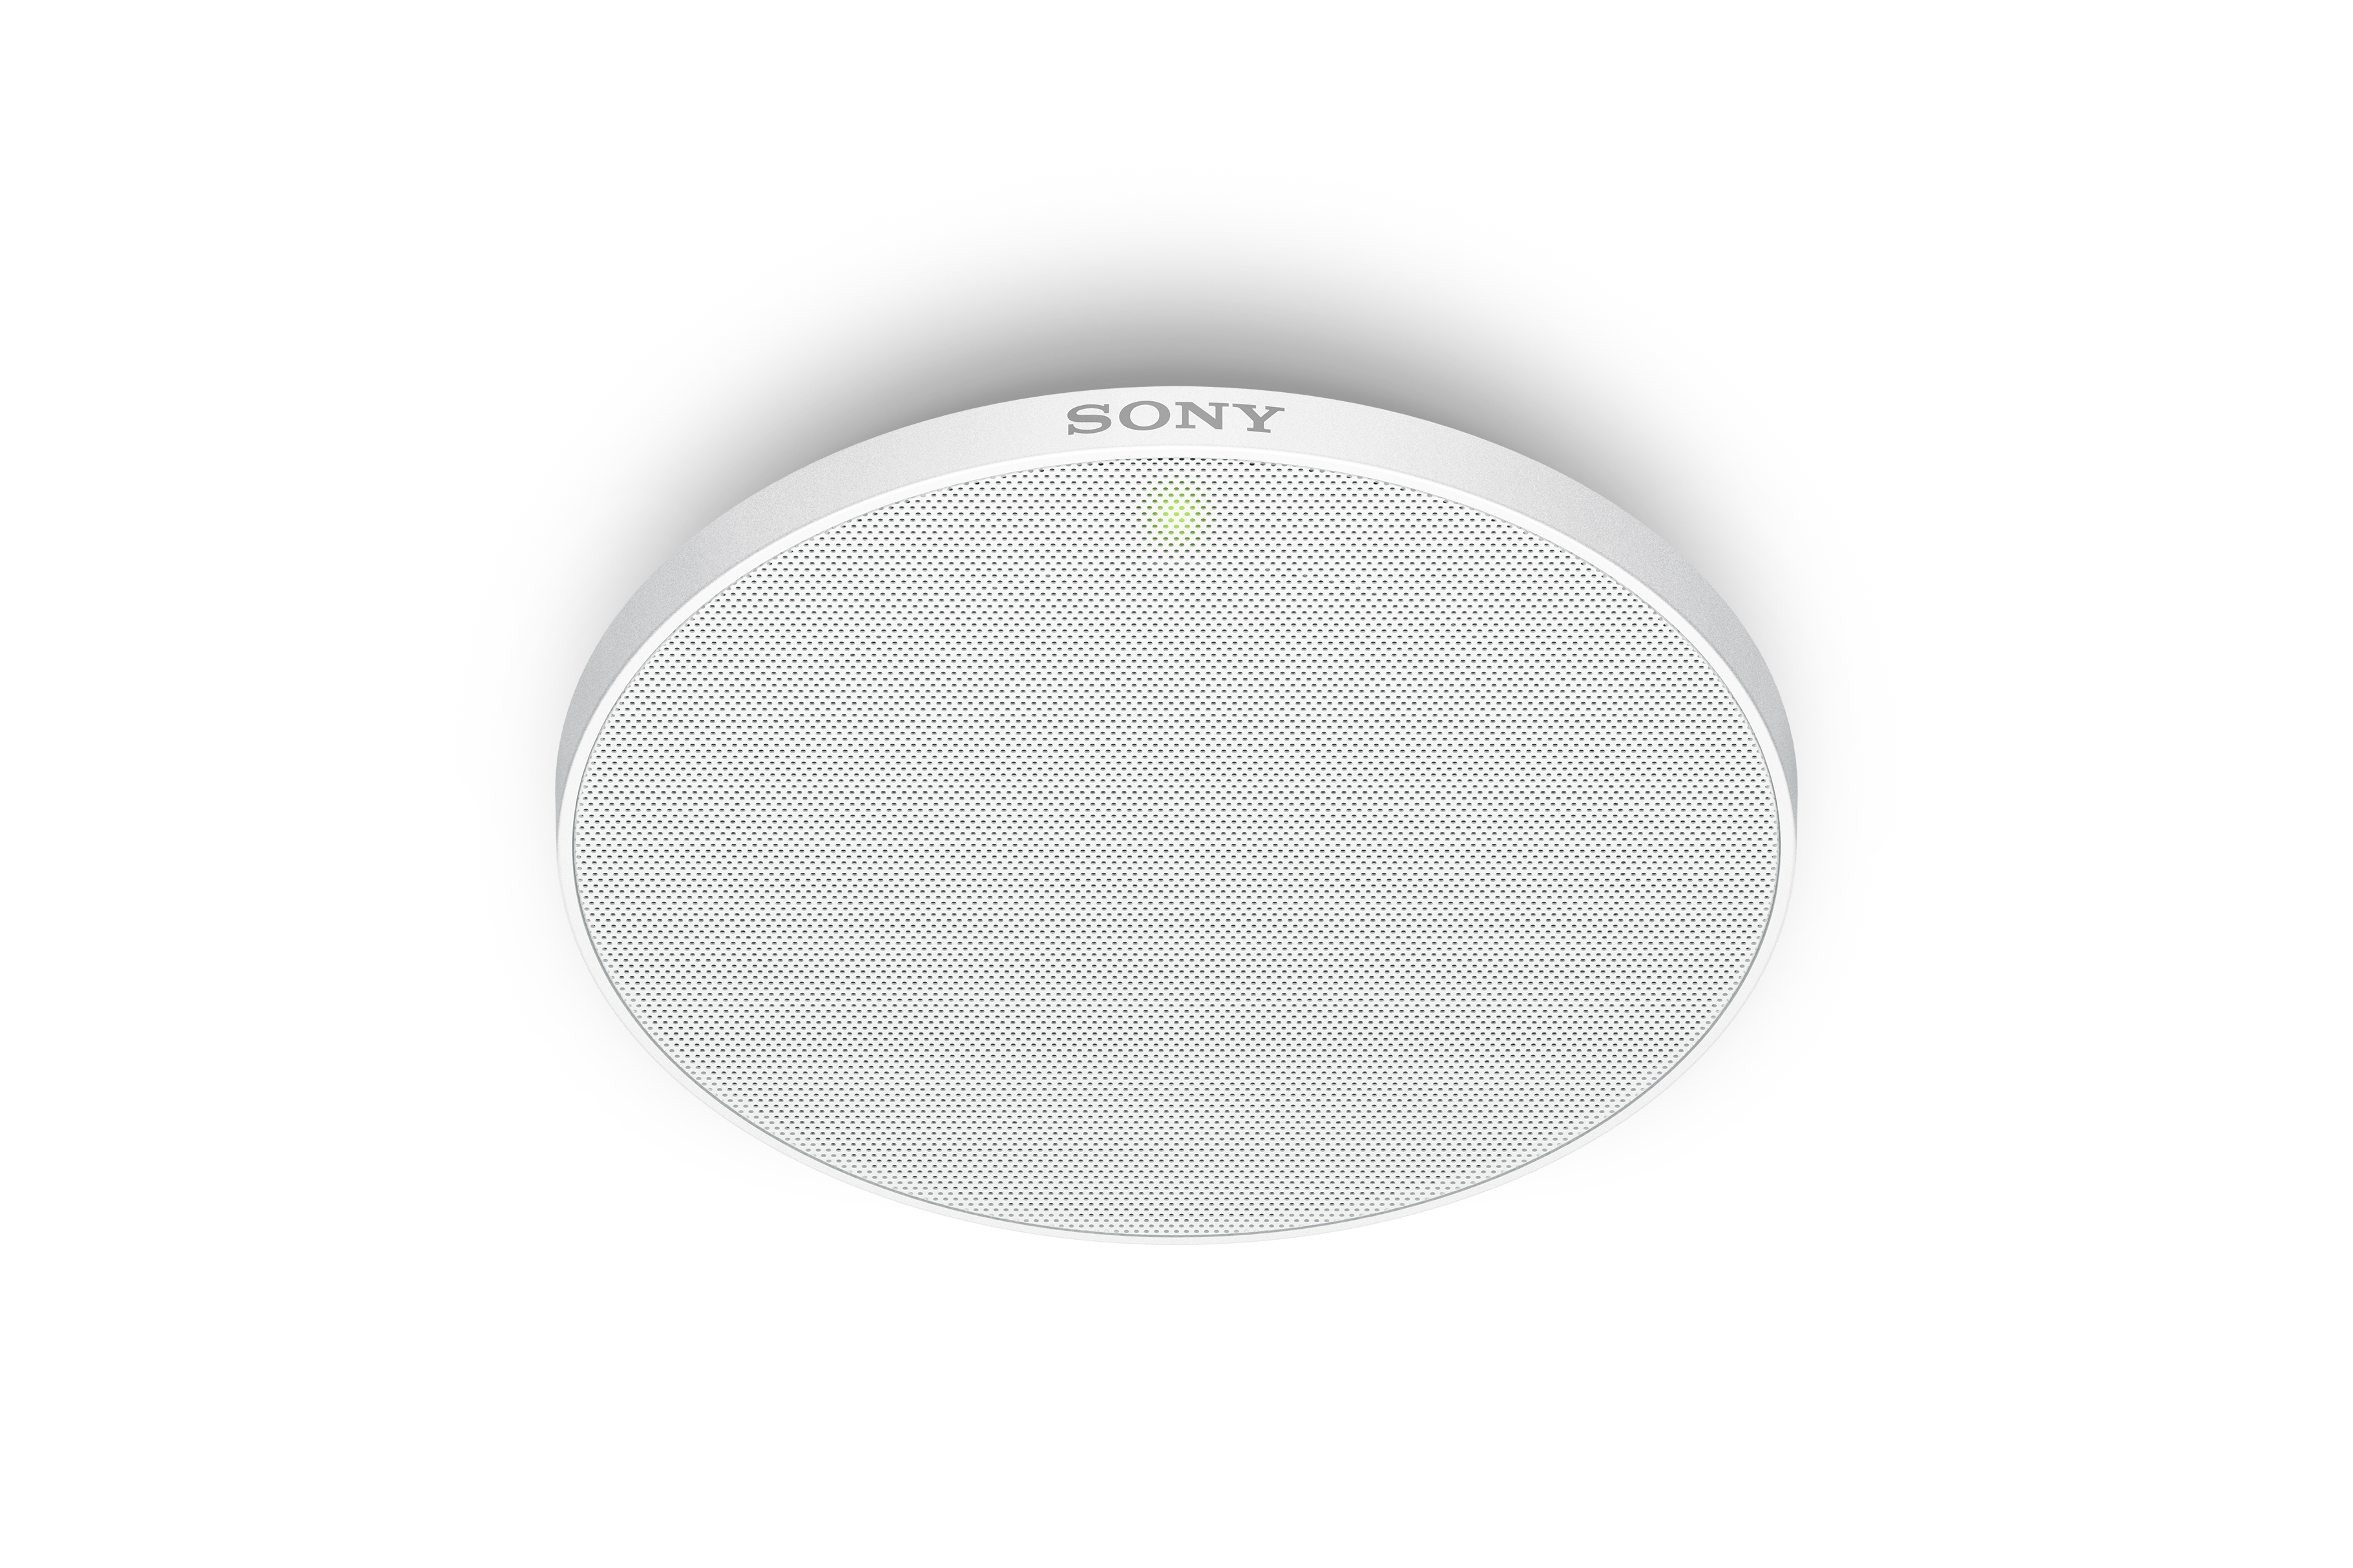 Sony launches IP-based ceiling beamforming[1] microphone with speech reinforcement and clear audio recording